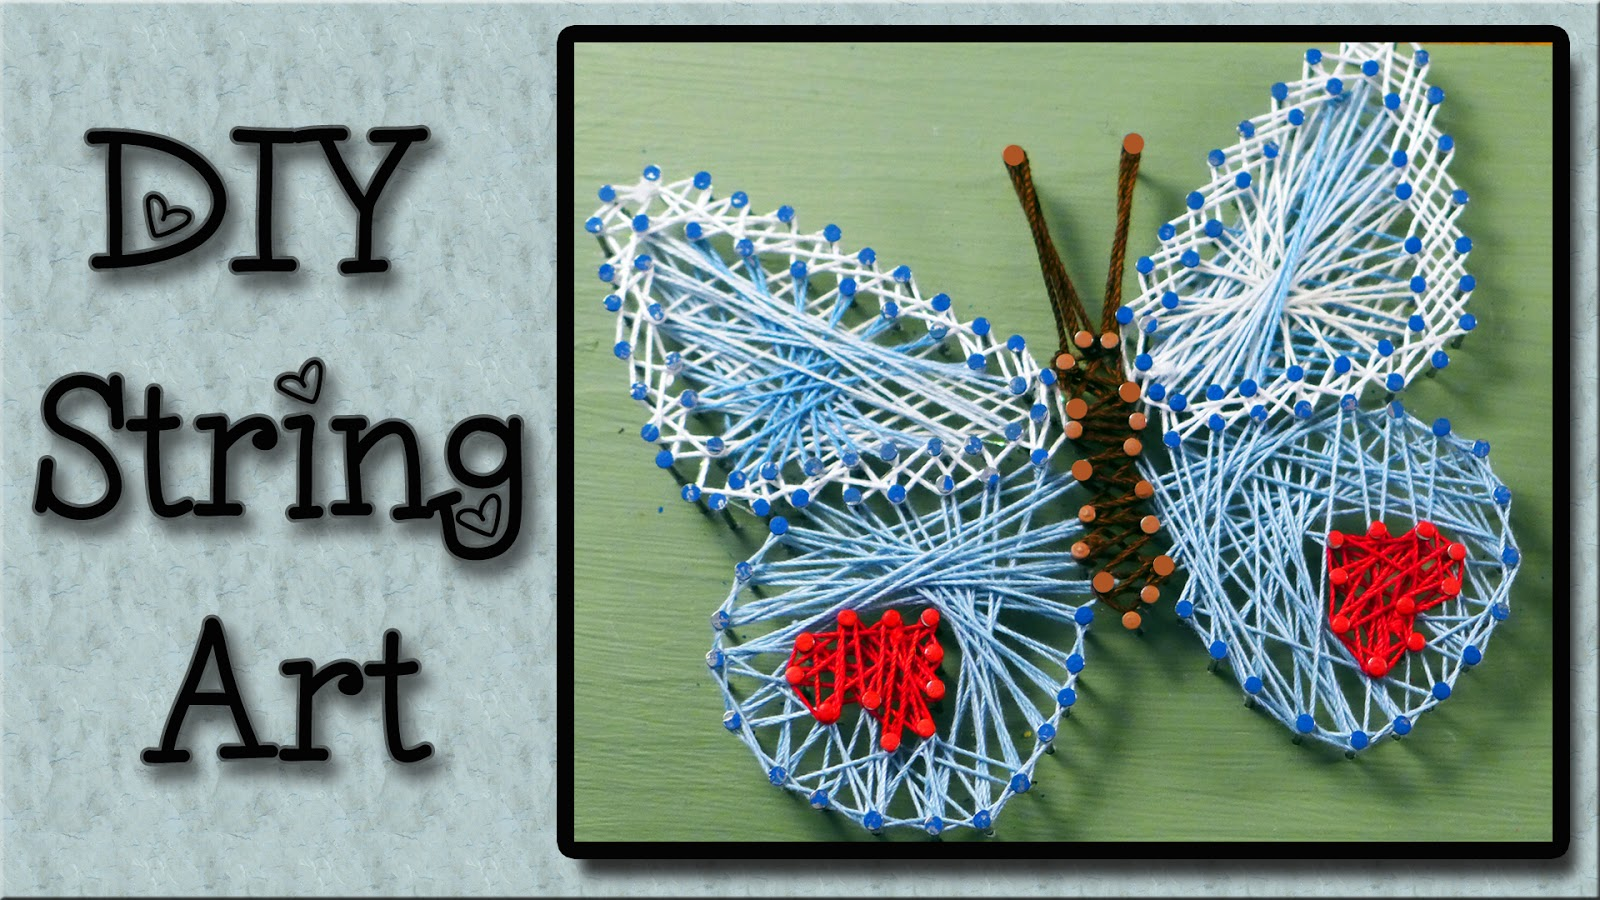 Easymeworld string art tutorial an easy craft for kids - Creative digital art ideas for your home ...